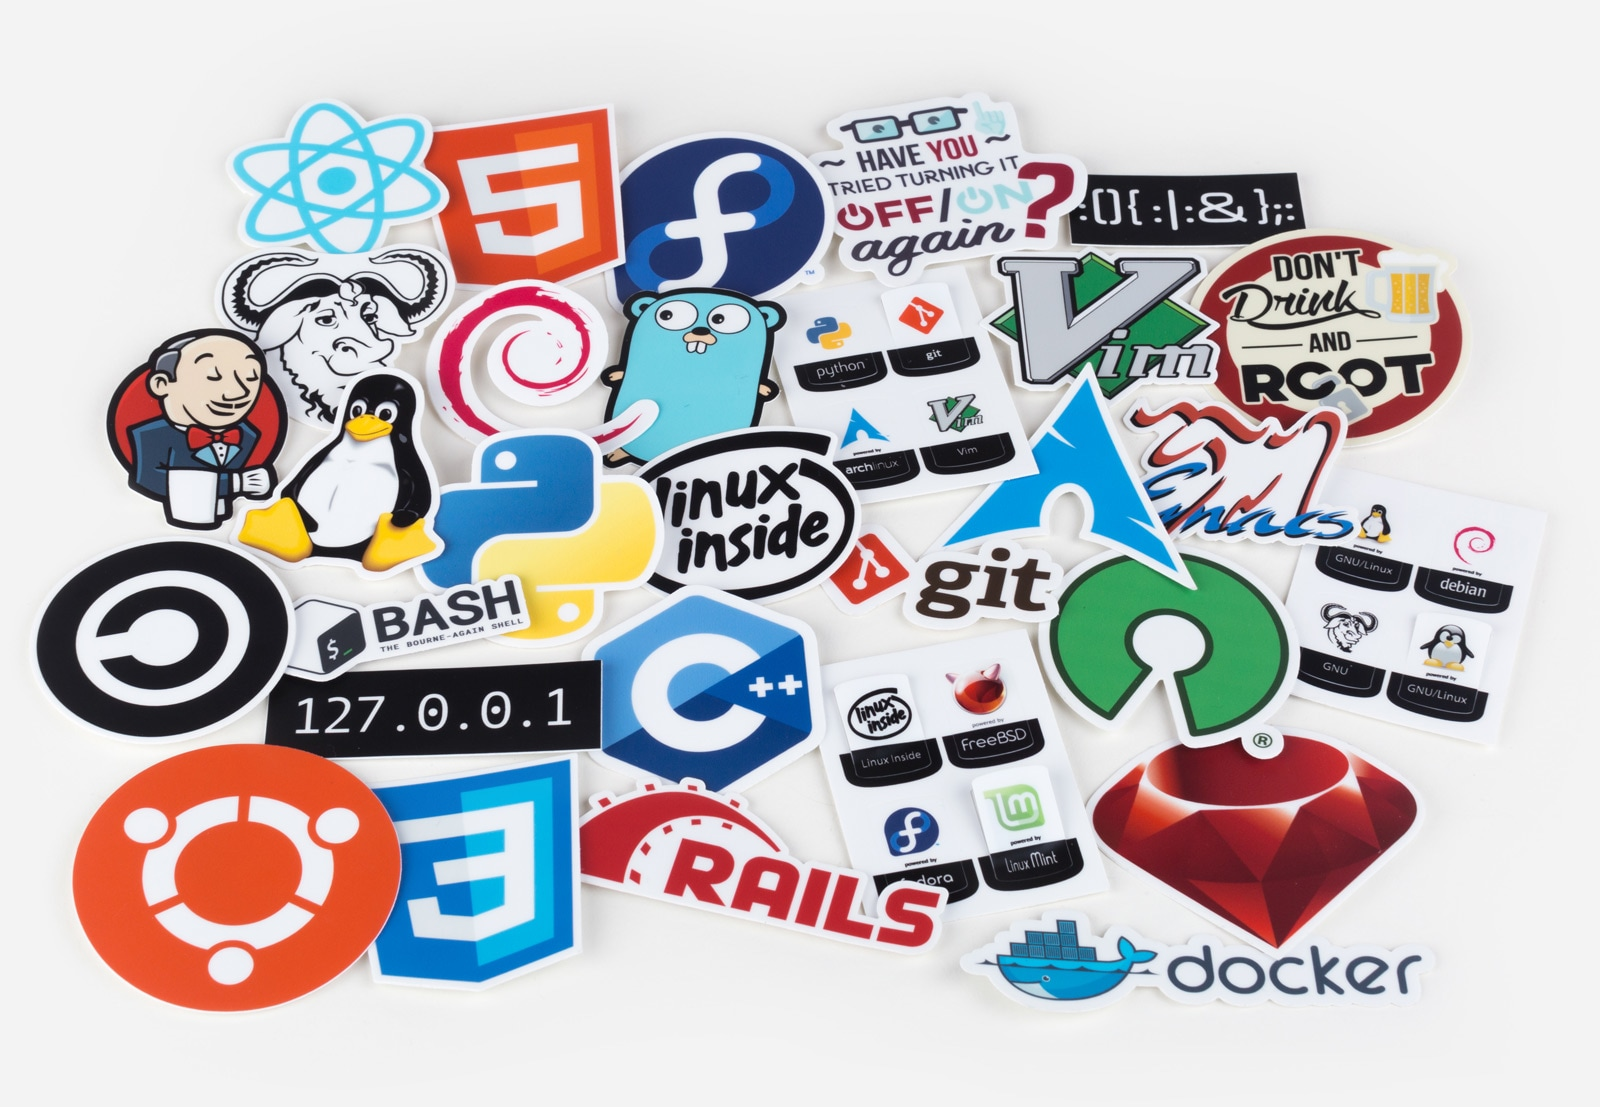 Unixstickers - Ultimate pack by Sticker Mule